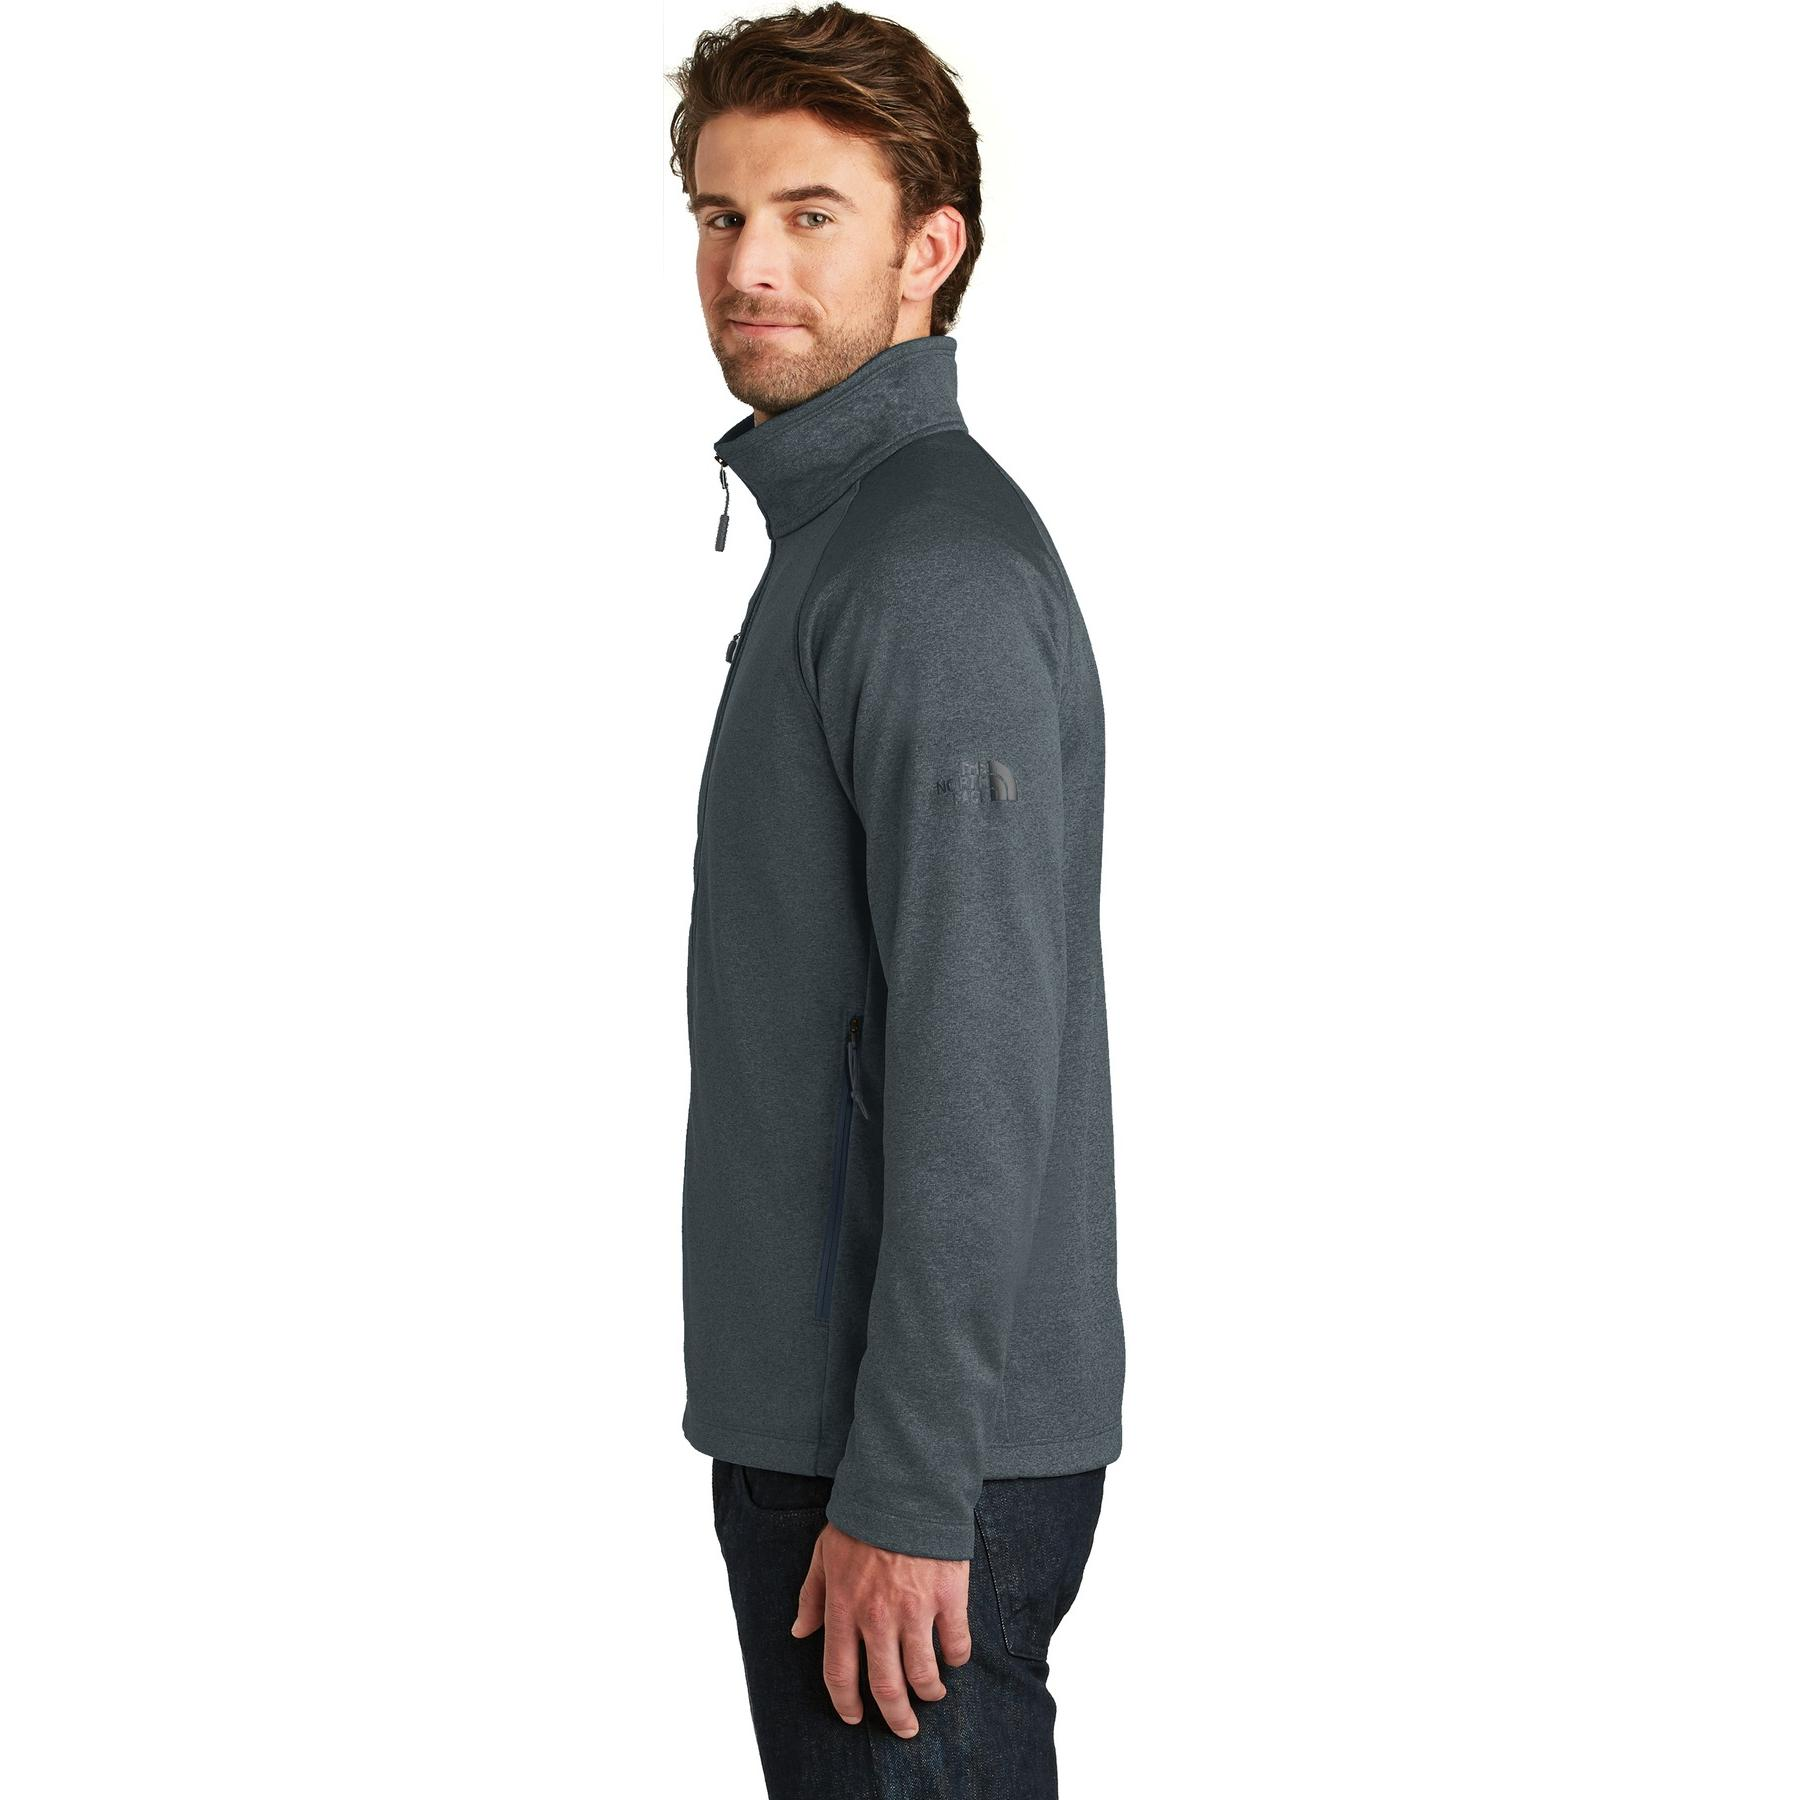 6b8b0dd0eca4 The North Face NF0A3LH9 Canyon Flats Fleece Jacket - Urban Navy ...